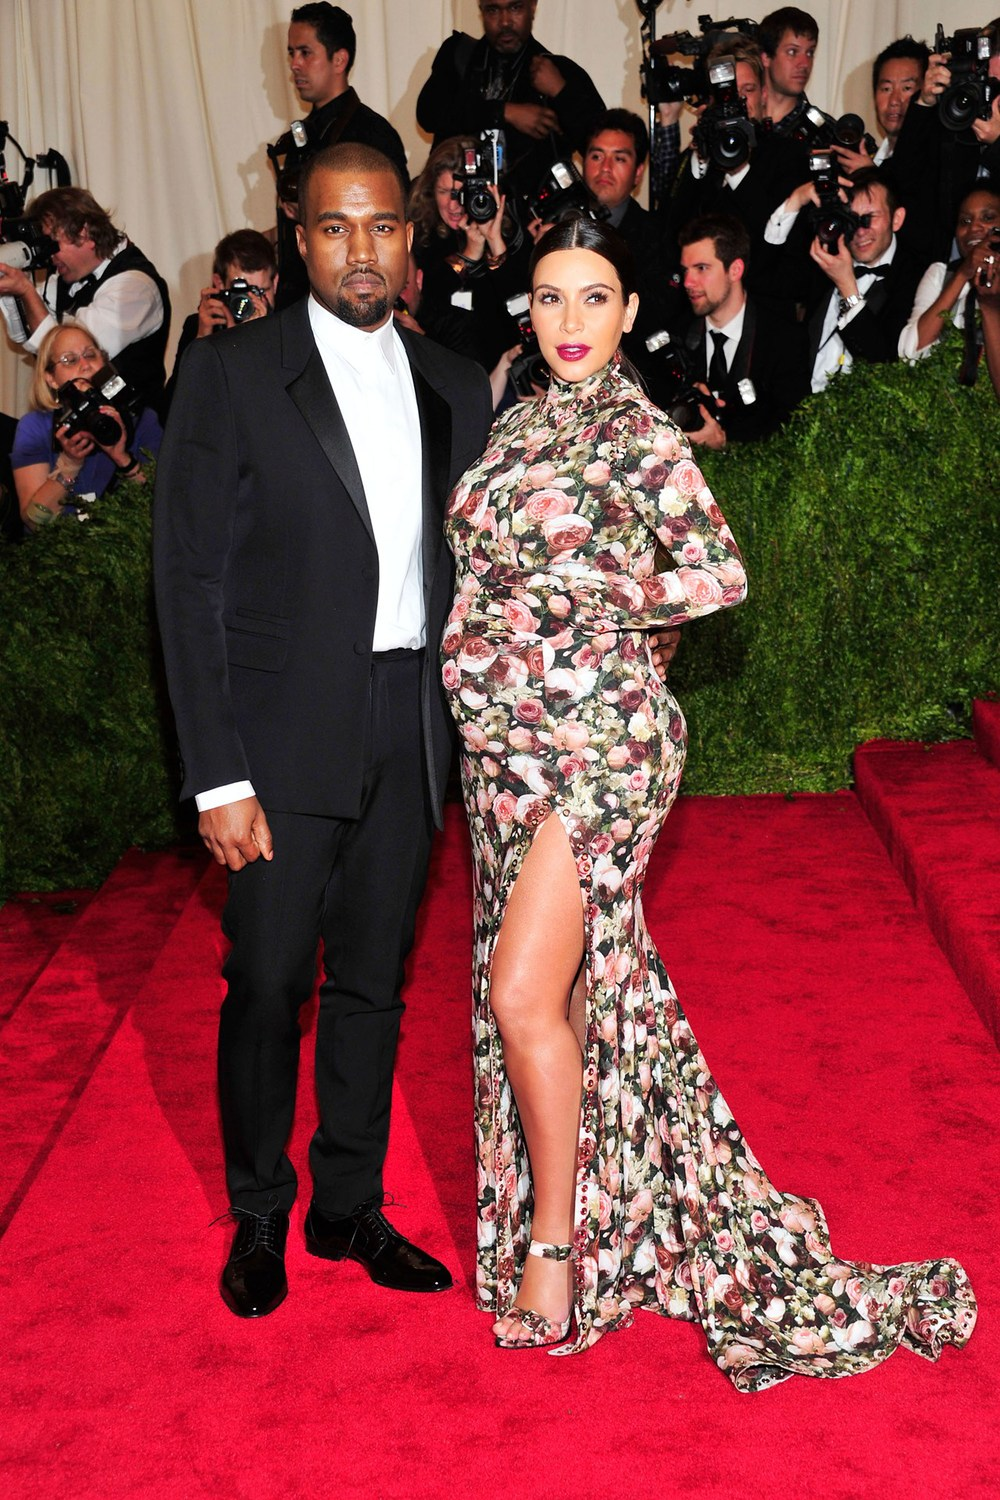 kanye-west-kim-kardashian-vogue-7may13-pa_b_1280x1920.jpg